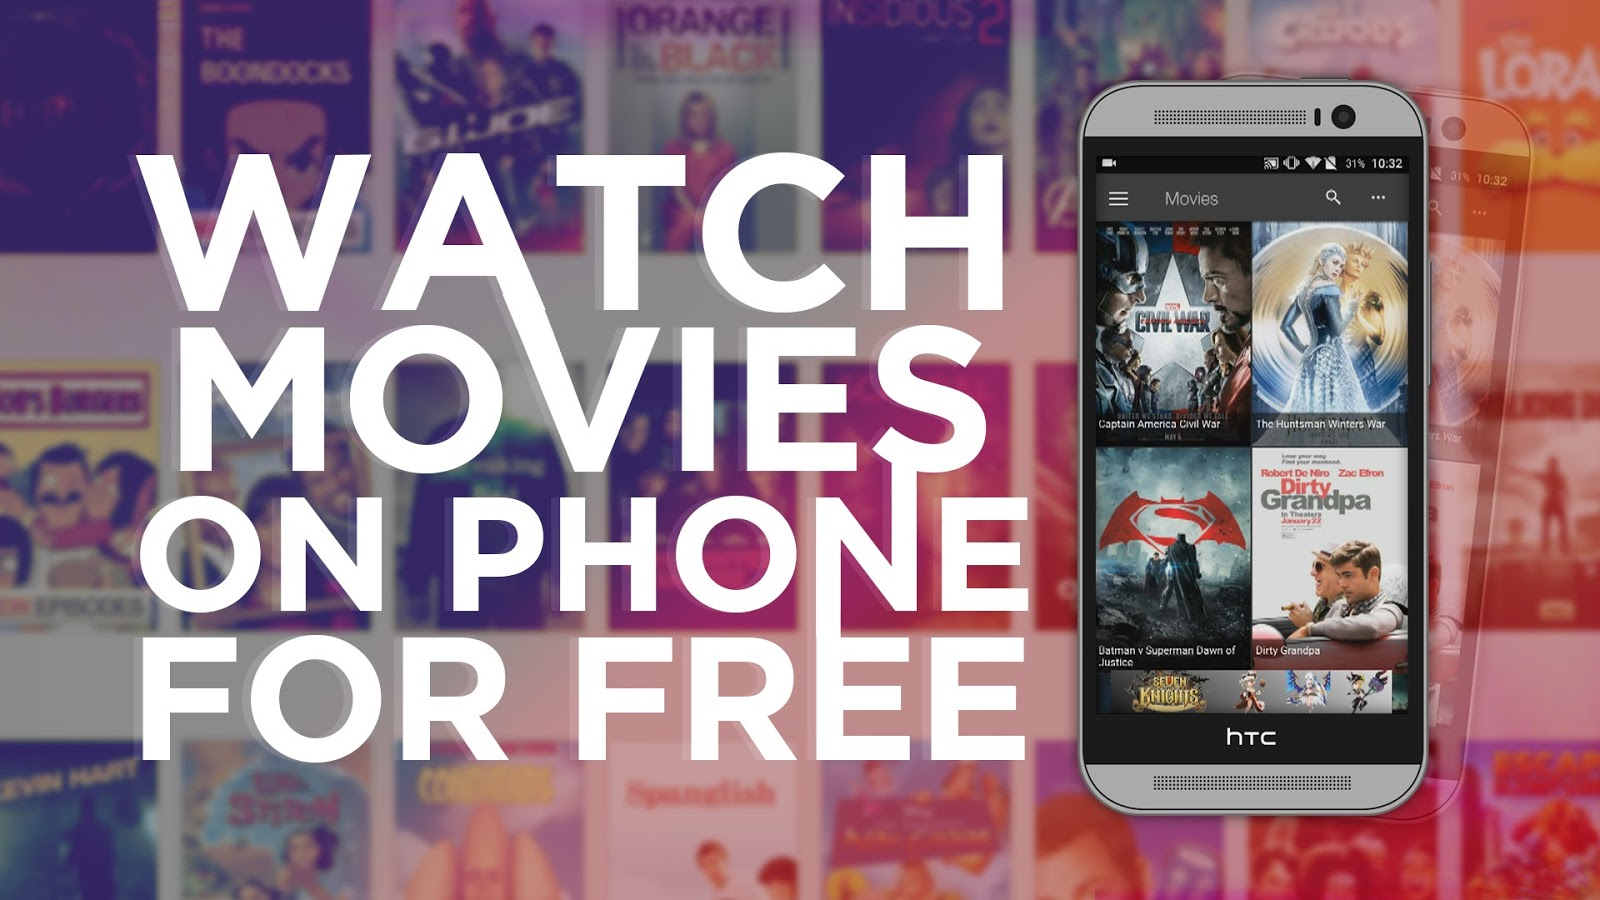 Phone Movie Sites For Android Phones 12 apps like showbox best alternatives to watchstream free hd movies 8 movie for android and ios 2017 latest working